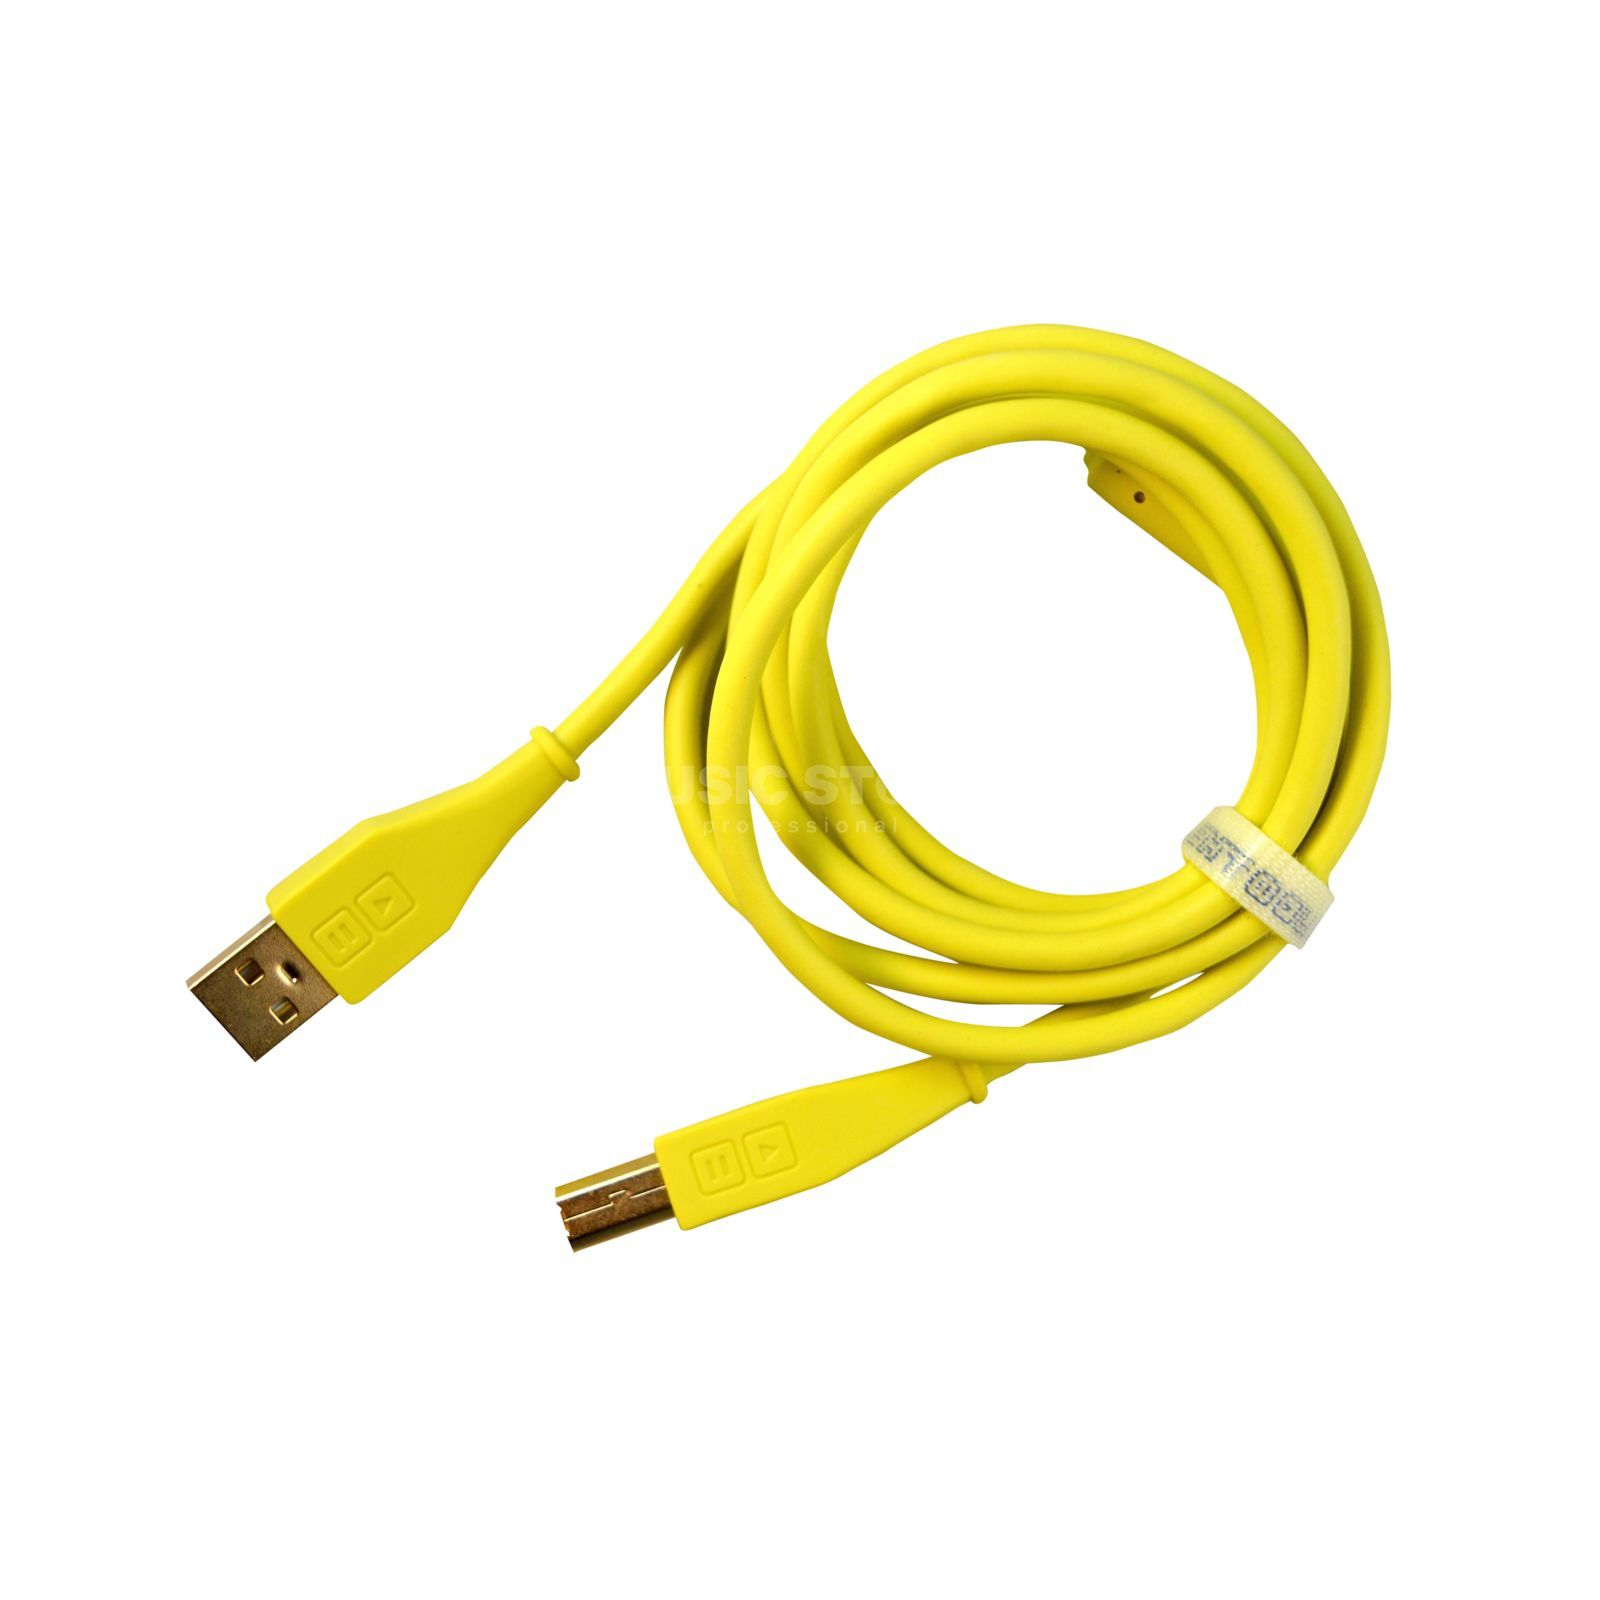 DJ TECHTOOLS DJTT USB Chroma Cable Green 1.5m, straight Produktbillede